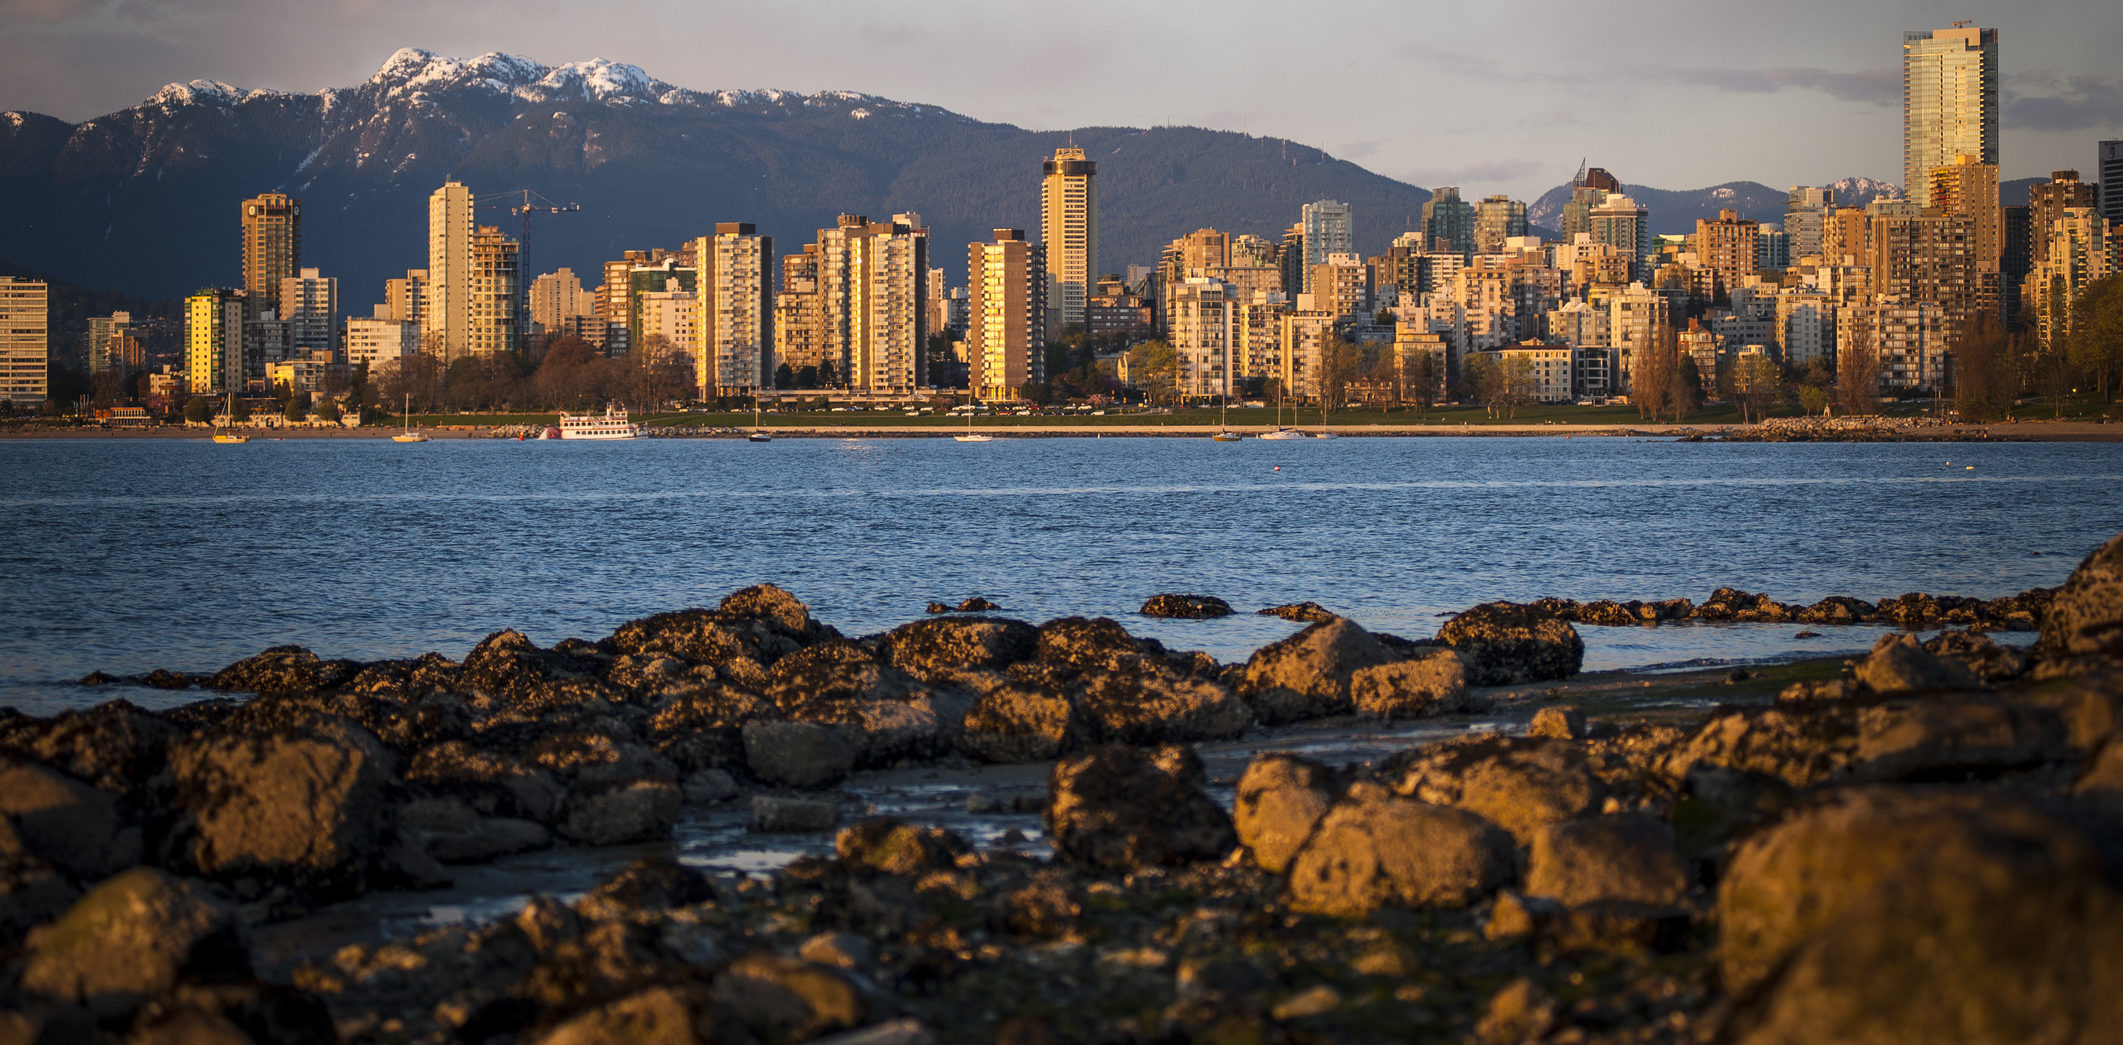 Ships Dumped 35 Million Tonnes Of Contaminated Water Off Coast BC, Canada 7